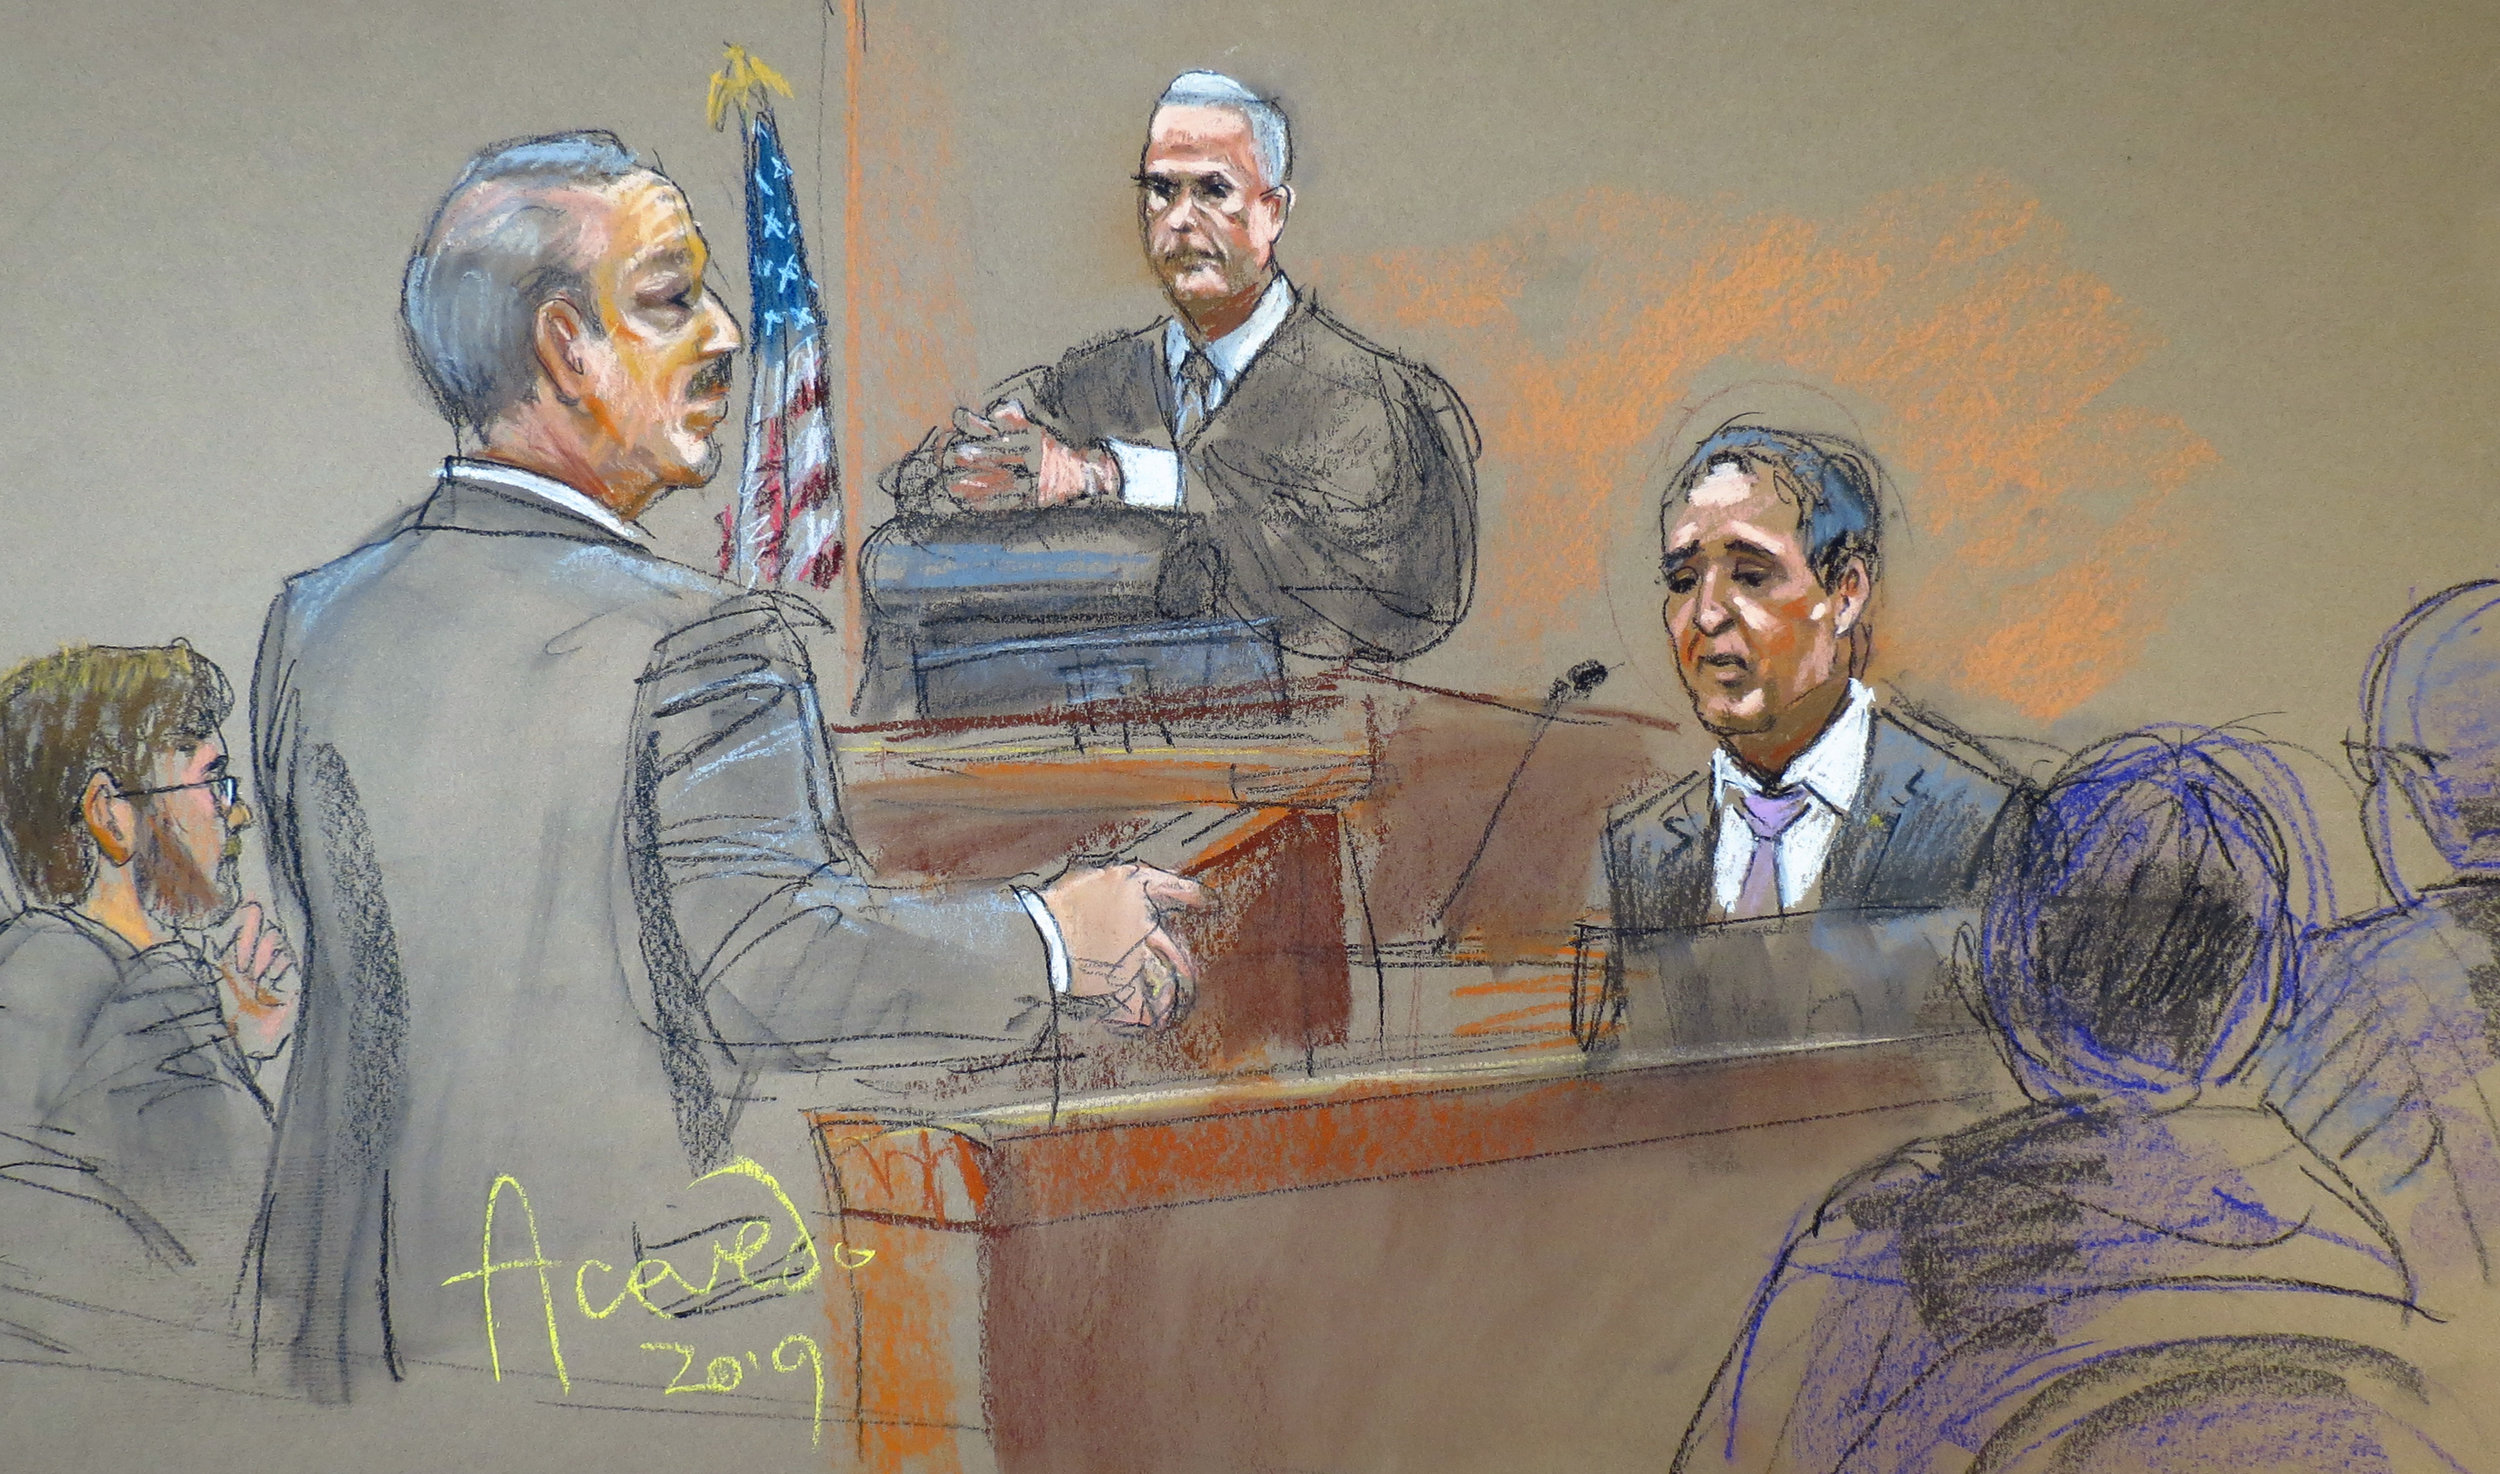 Phil Vetrano testifies Tuesday in the retrial of Chanel Lewis, the man accused of killing Vetrano's daughter Karina. He took the stand again on Wednesday as Assistant District Attorney Brad Leventhal continued direct examination. Justice Michael Aloise presides.  Eagle  court sketch by Alba Acevedo.